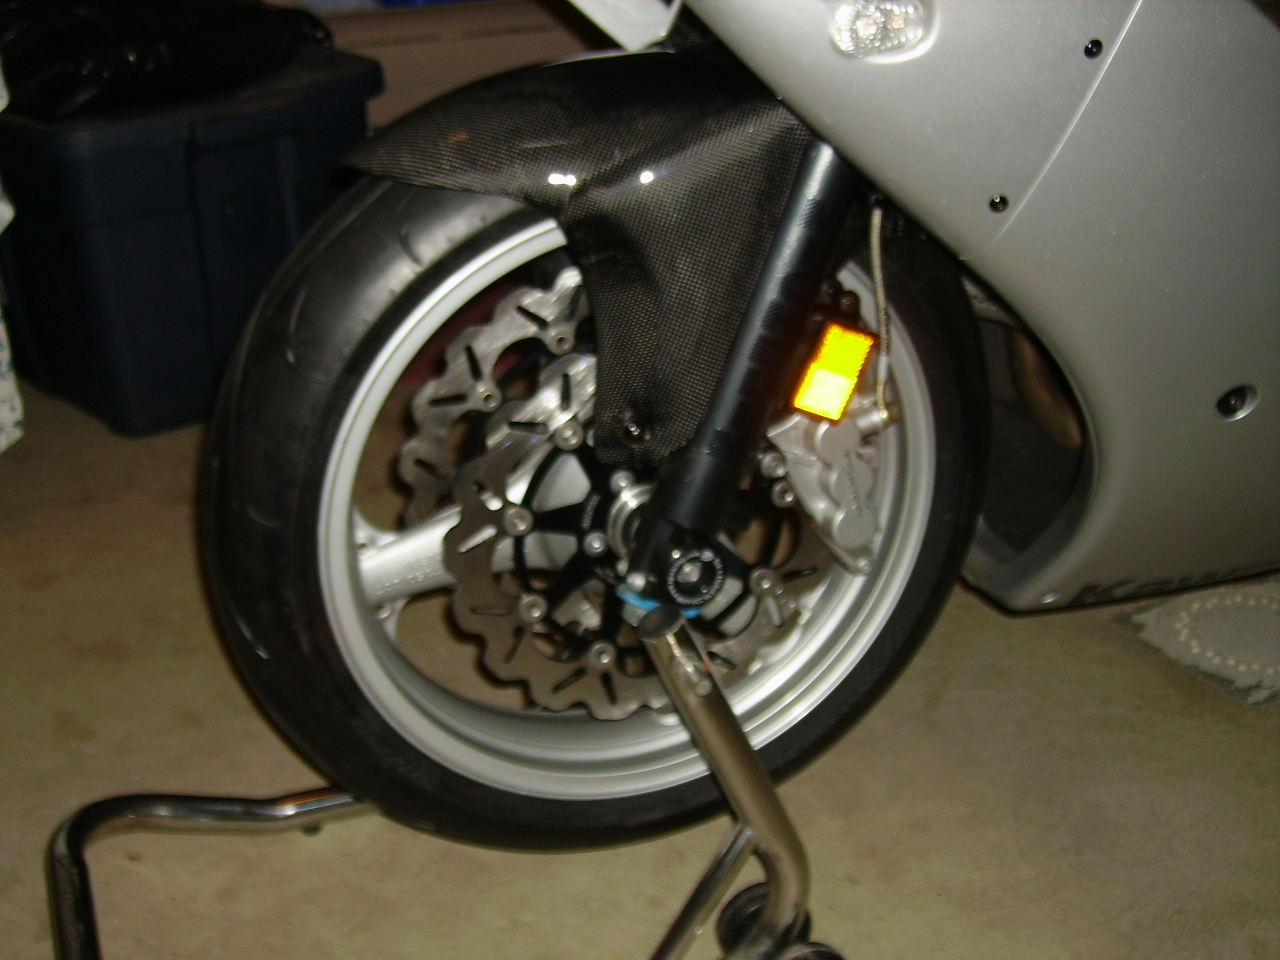 show-off-your-zzr600-rotors-004.jpg